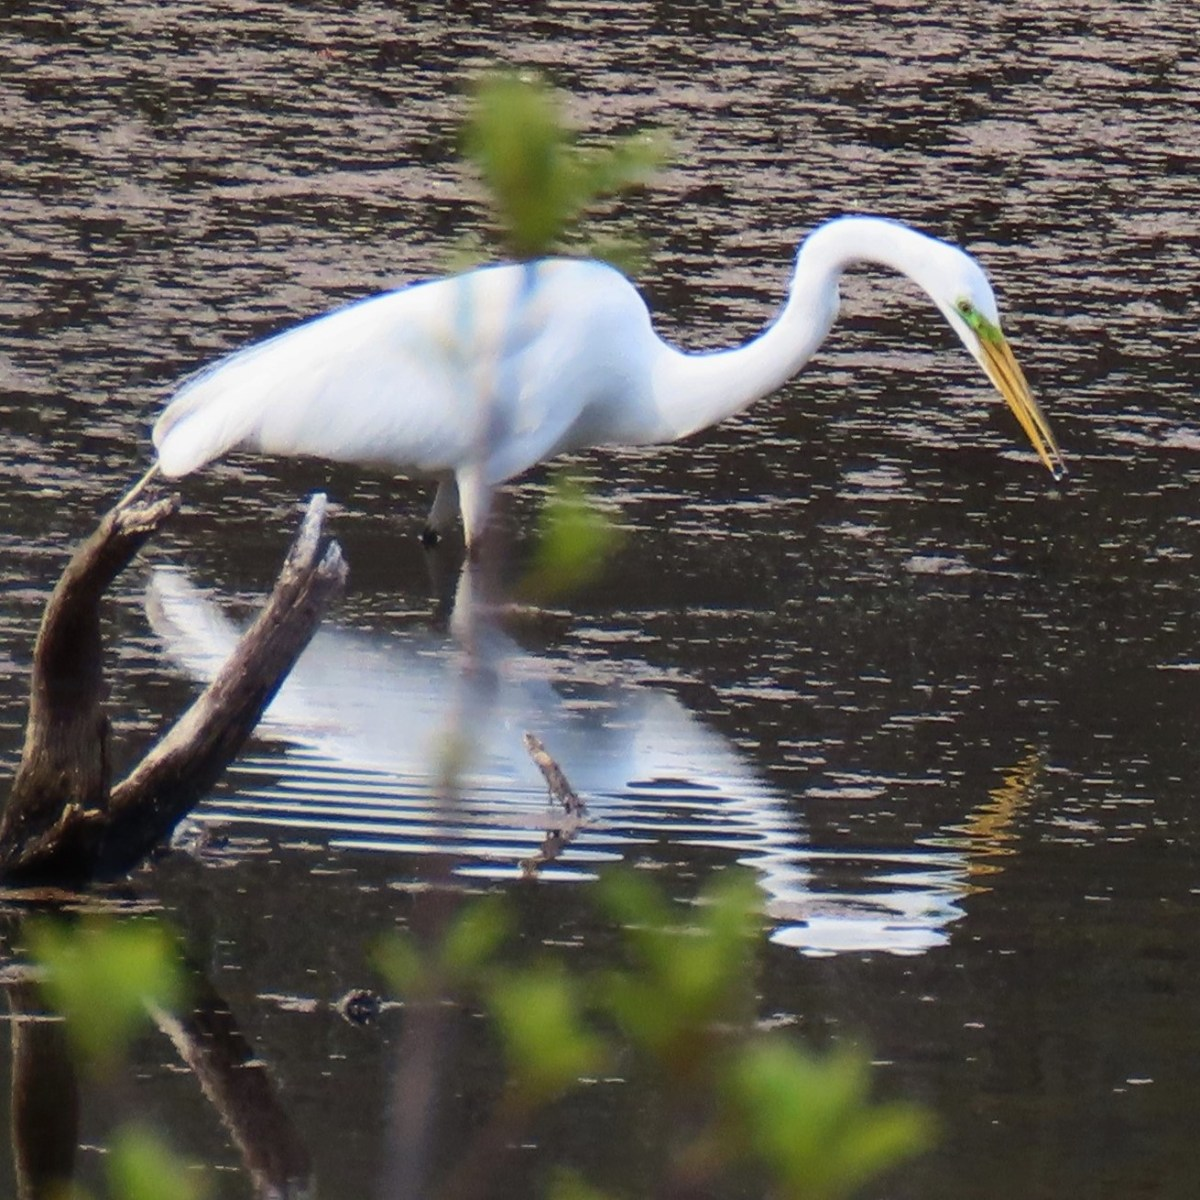 A Great Egret fishes in shallow water